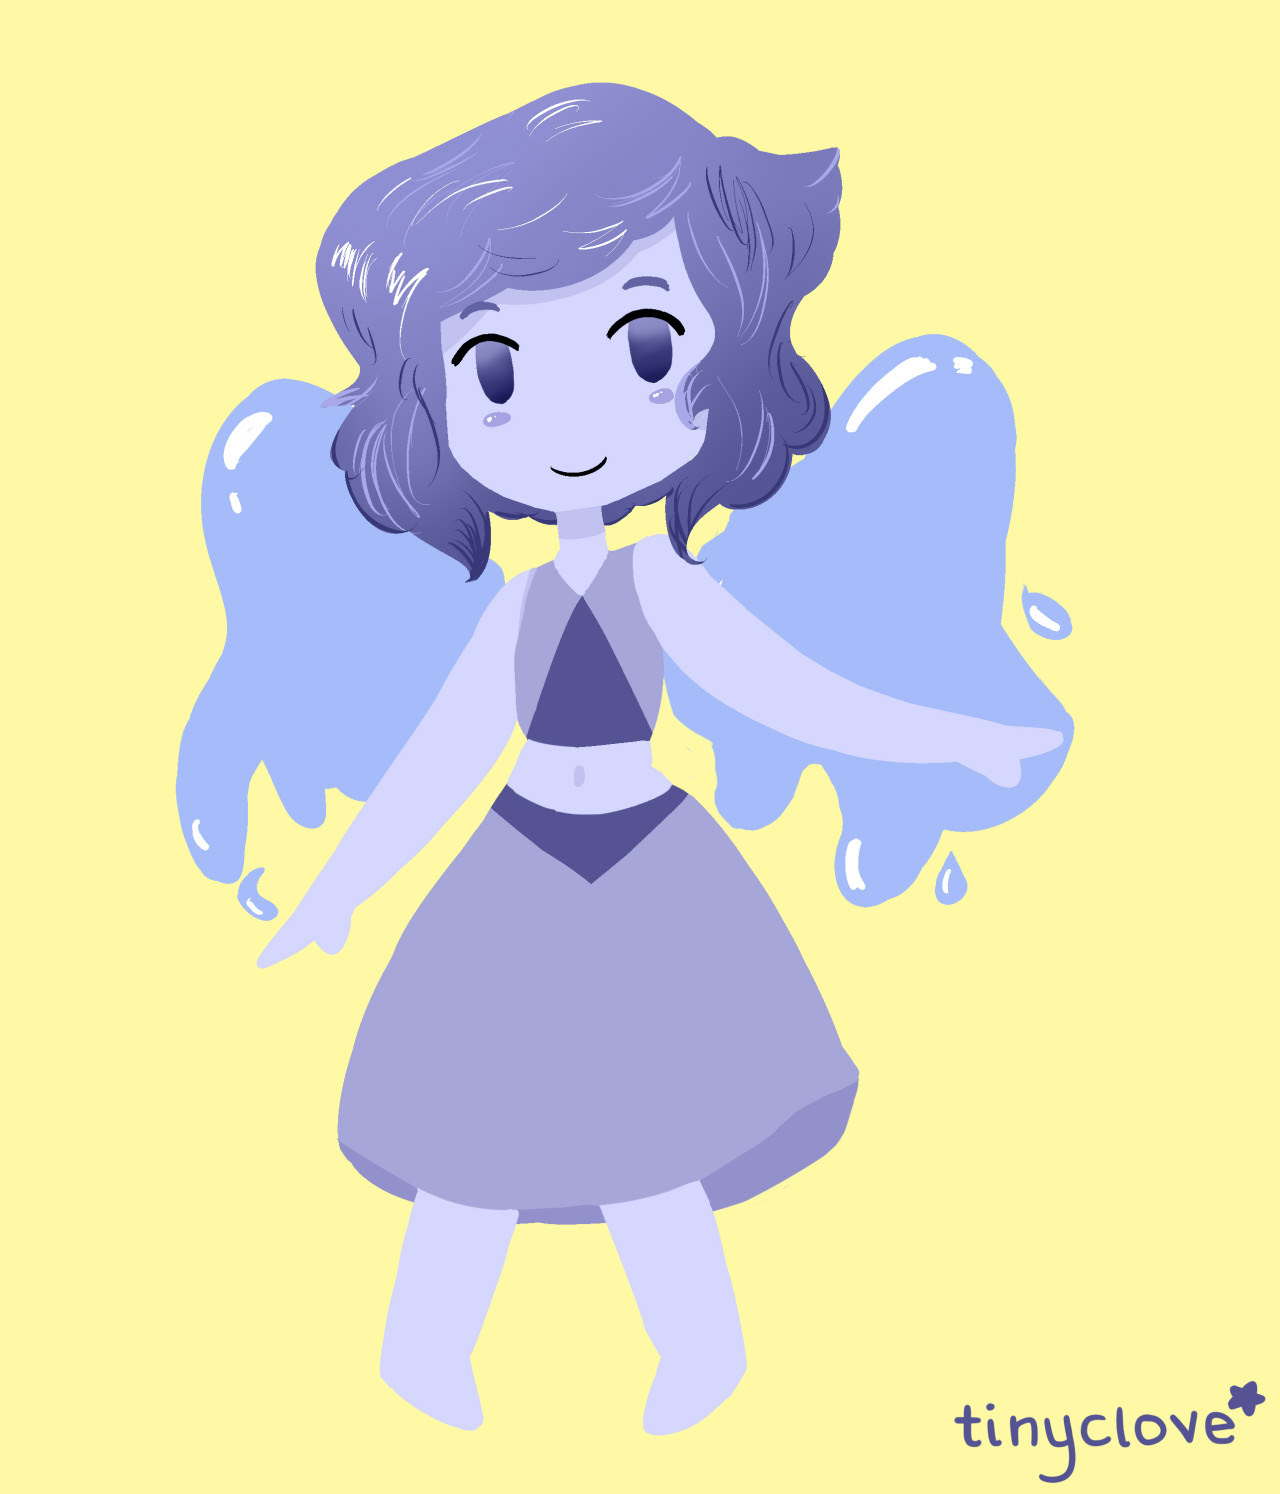 Another Lapis commissioned by @hyperdarkersonic! You can never have too much Lapis lmao